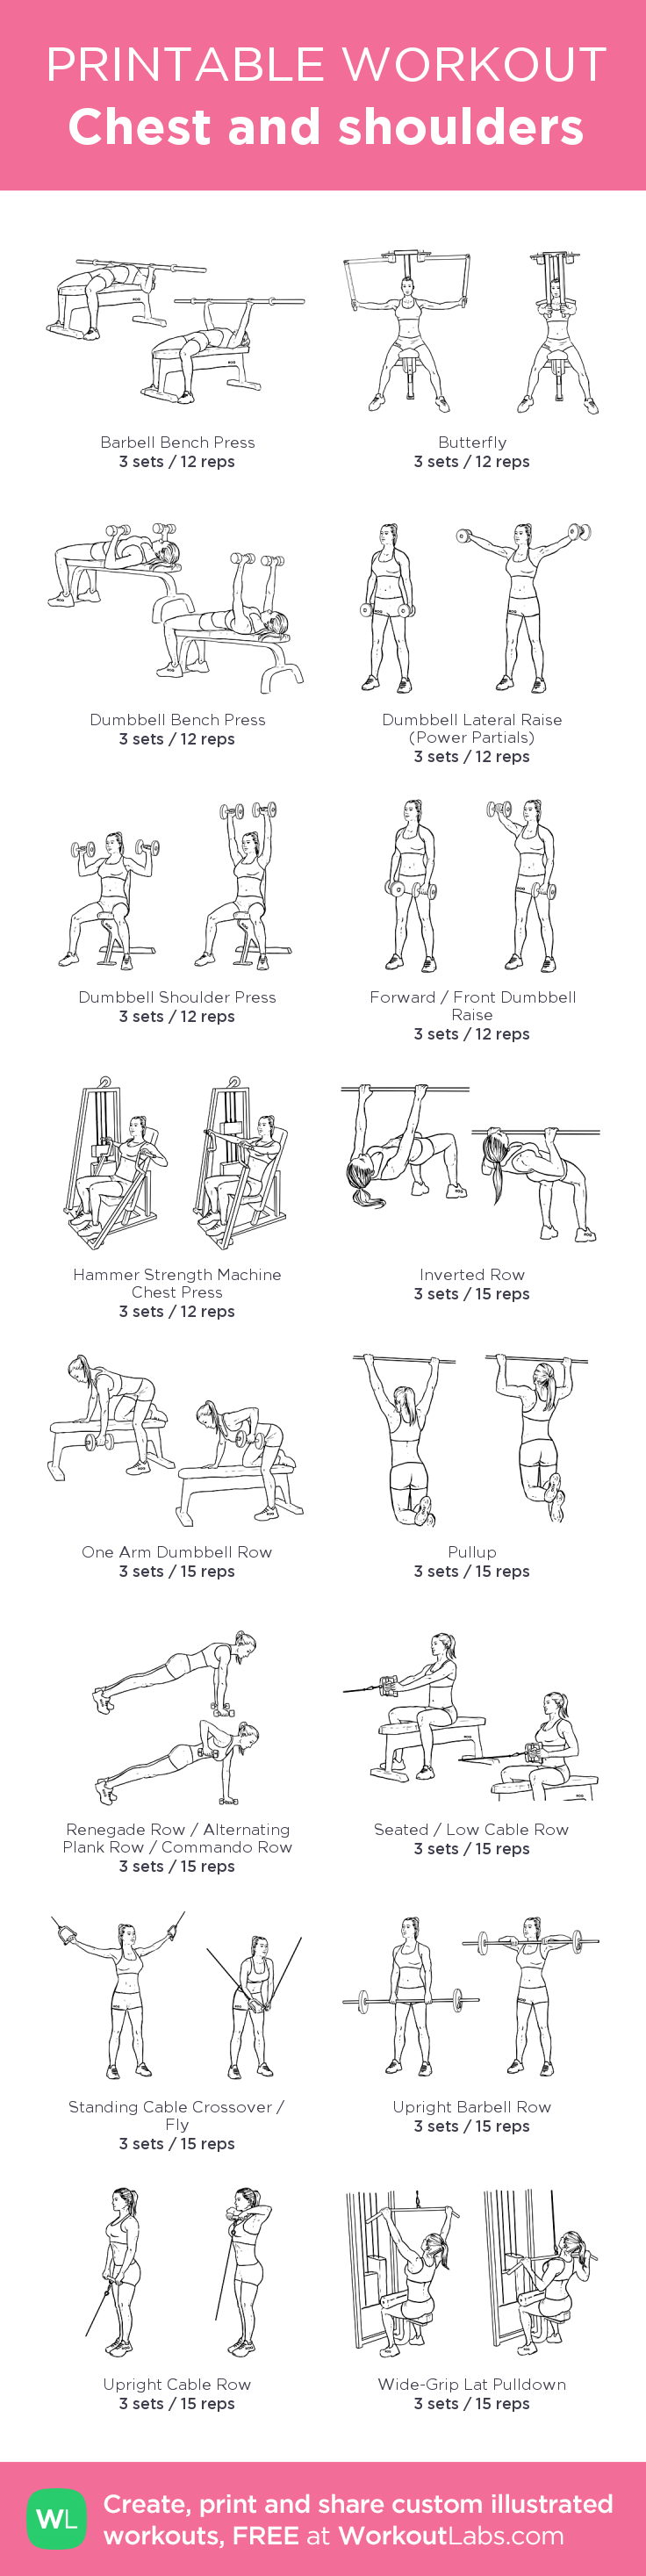 Back & Shoulders: my custom printable workout by @WorkoutLabs ...